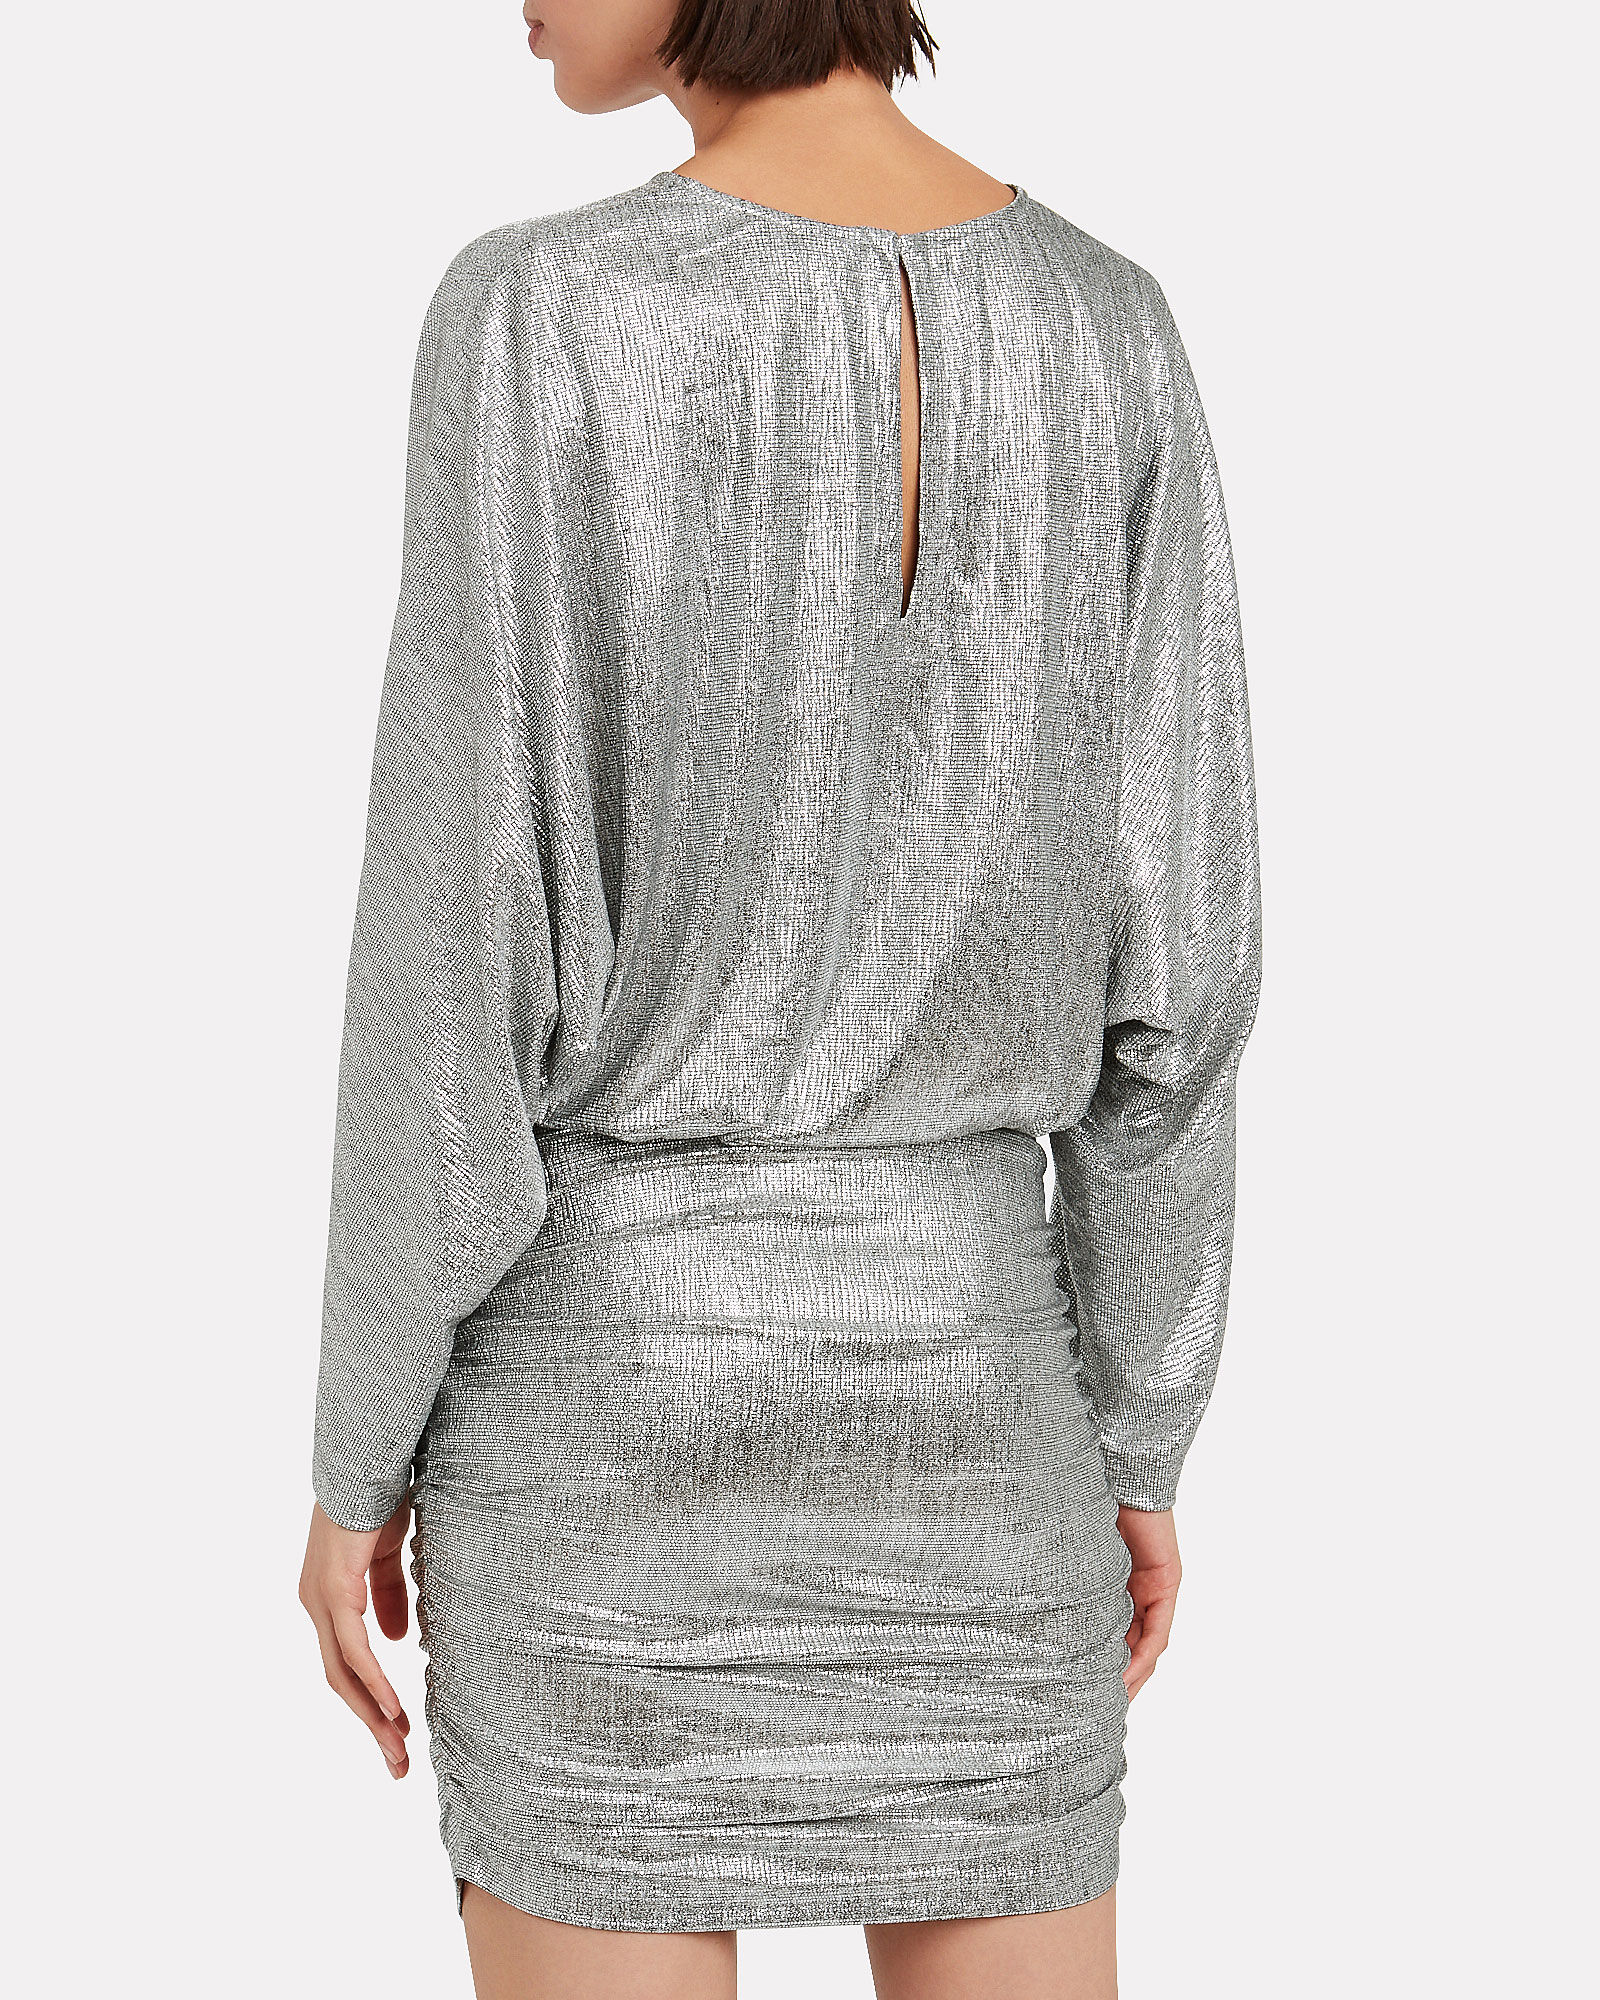 Silar Metallic Mini Dress, SILVER, hi-res